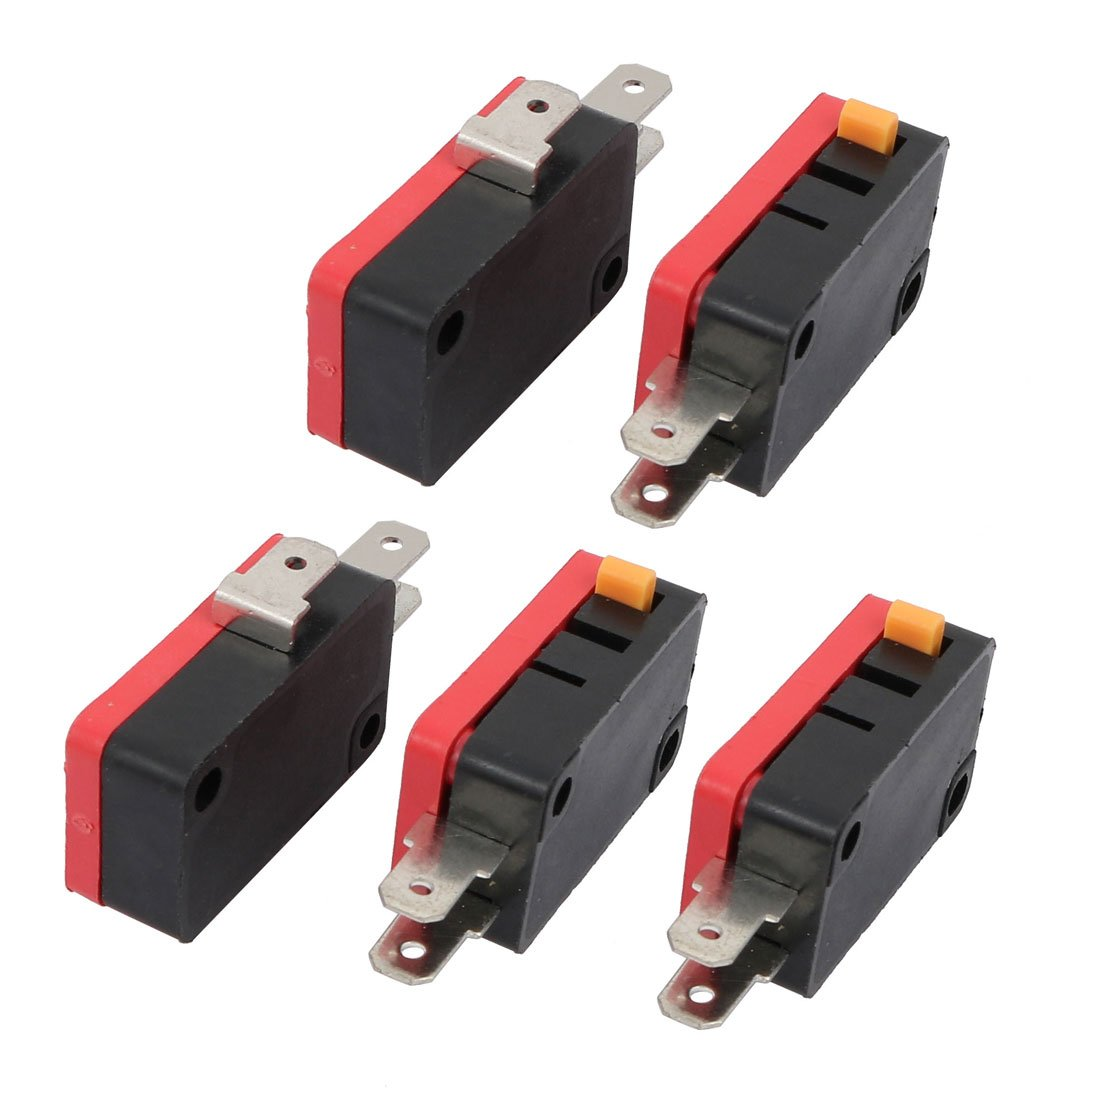 uxcell 5Pcs SPDT 1NO 1NC 3 Pins Momentary Push Button Micro Limit Switch